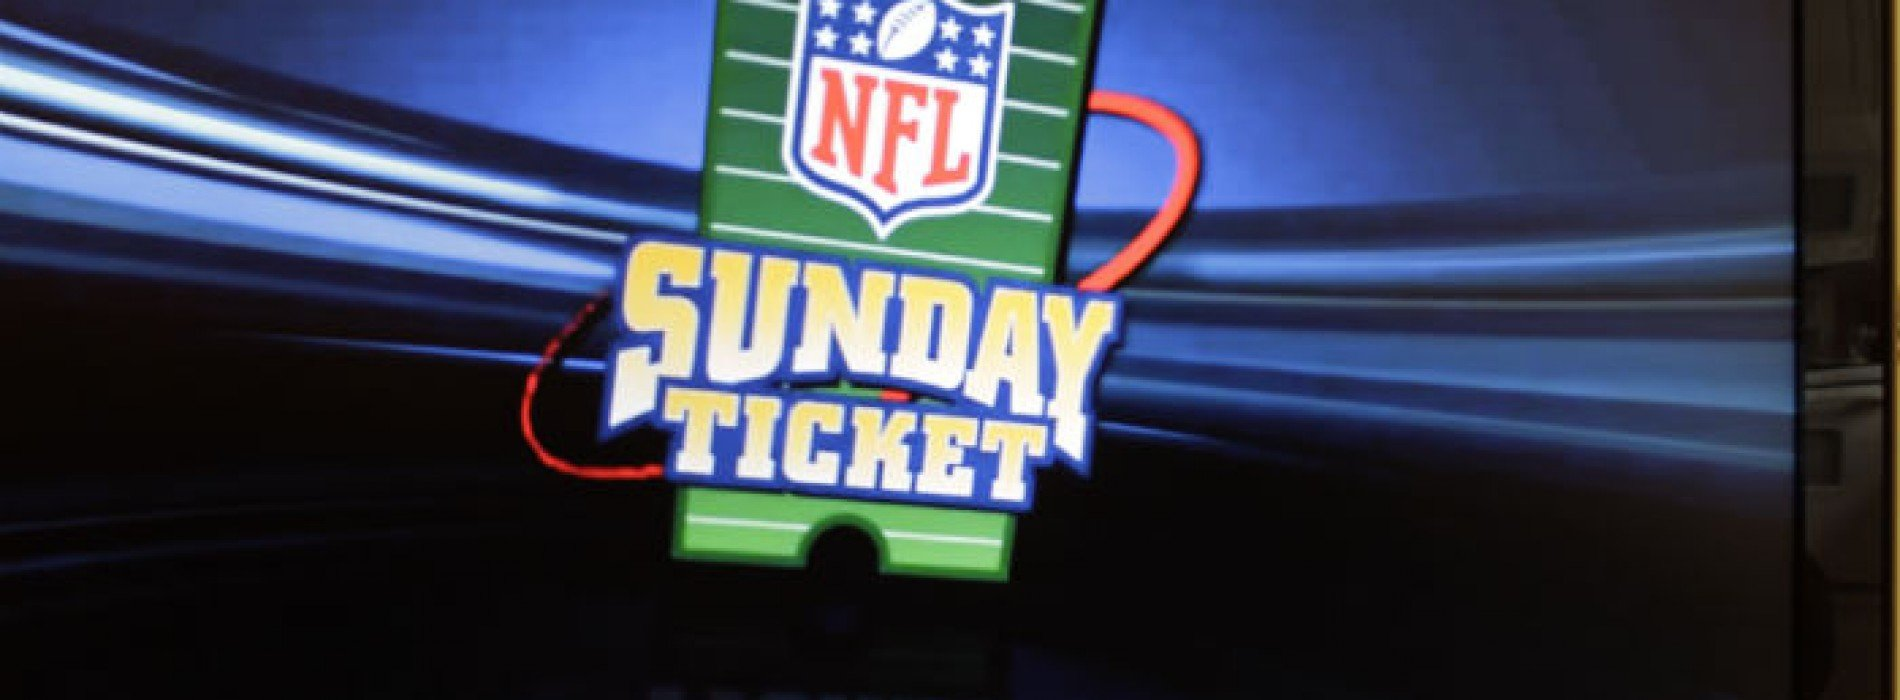 NFL fans rejoice as NFL Sunday Ticket is available for all